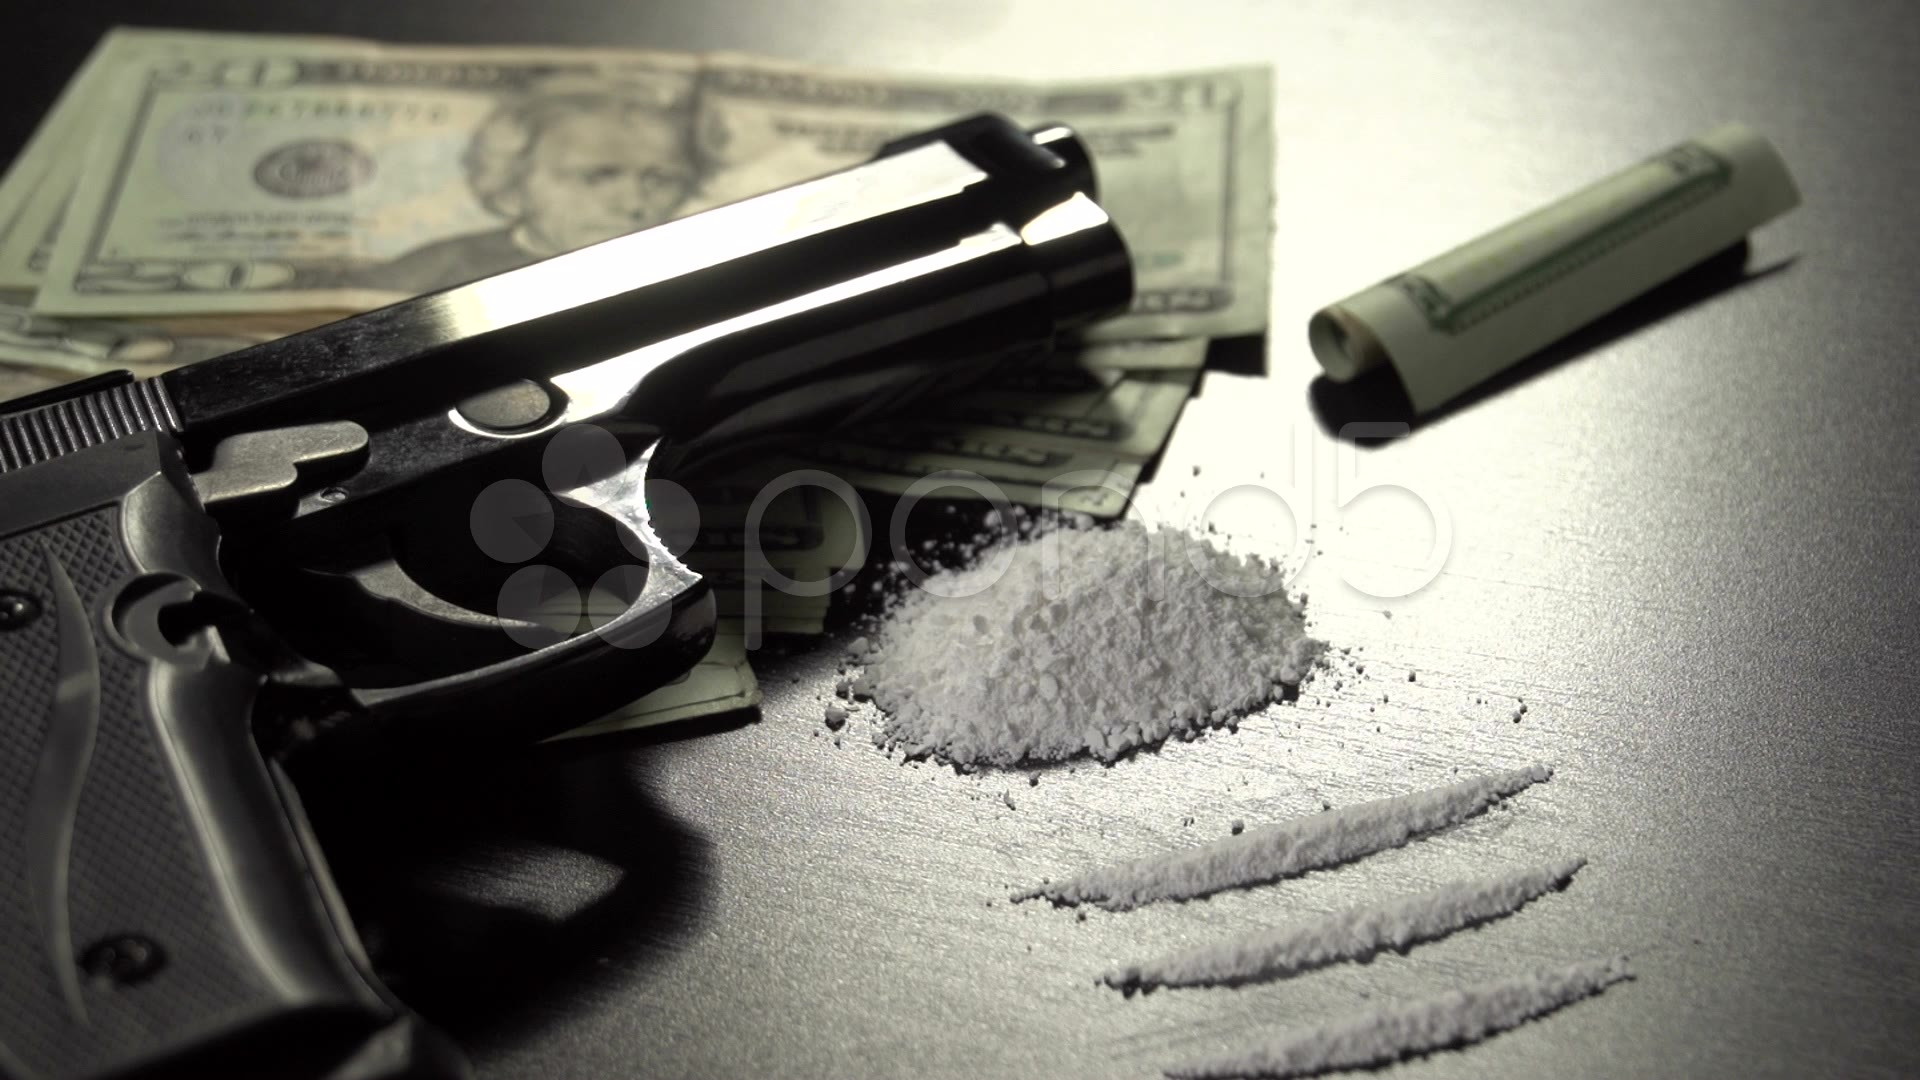 15 Guns And Money PSD Images